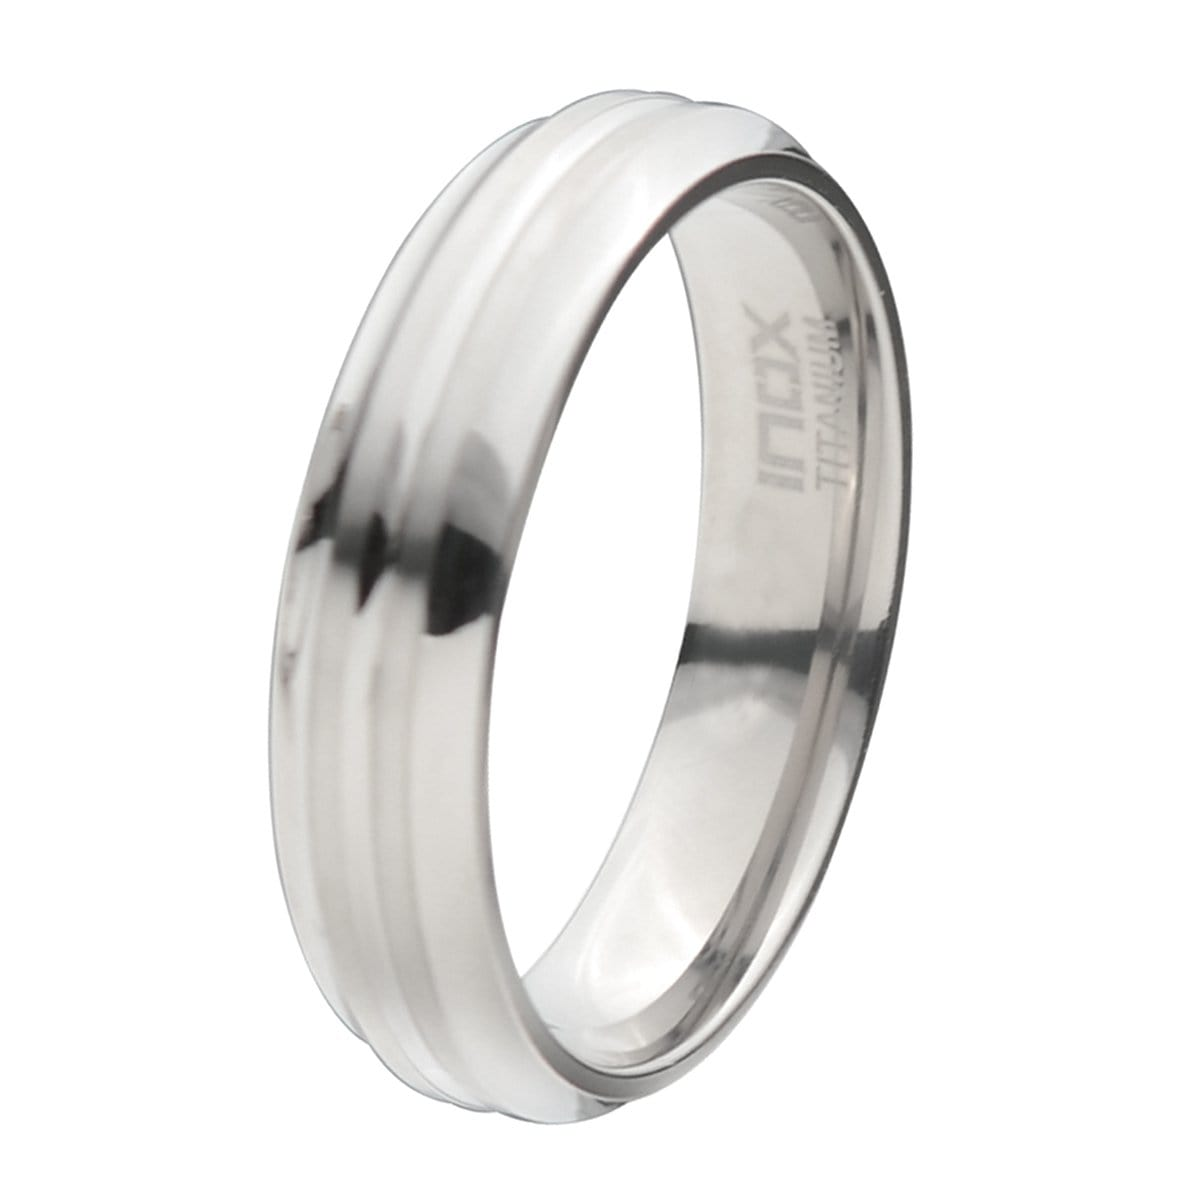 Silver Titanium 6mm Deep Groove Pattern Classic Band Rings